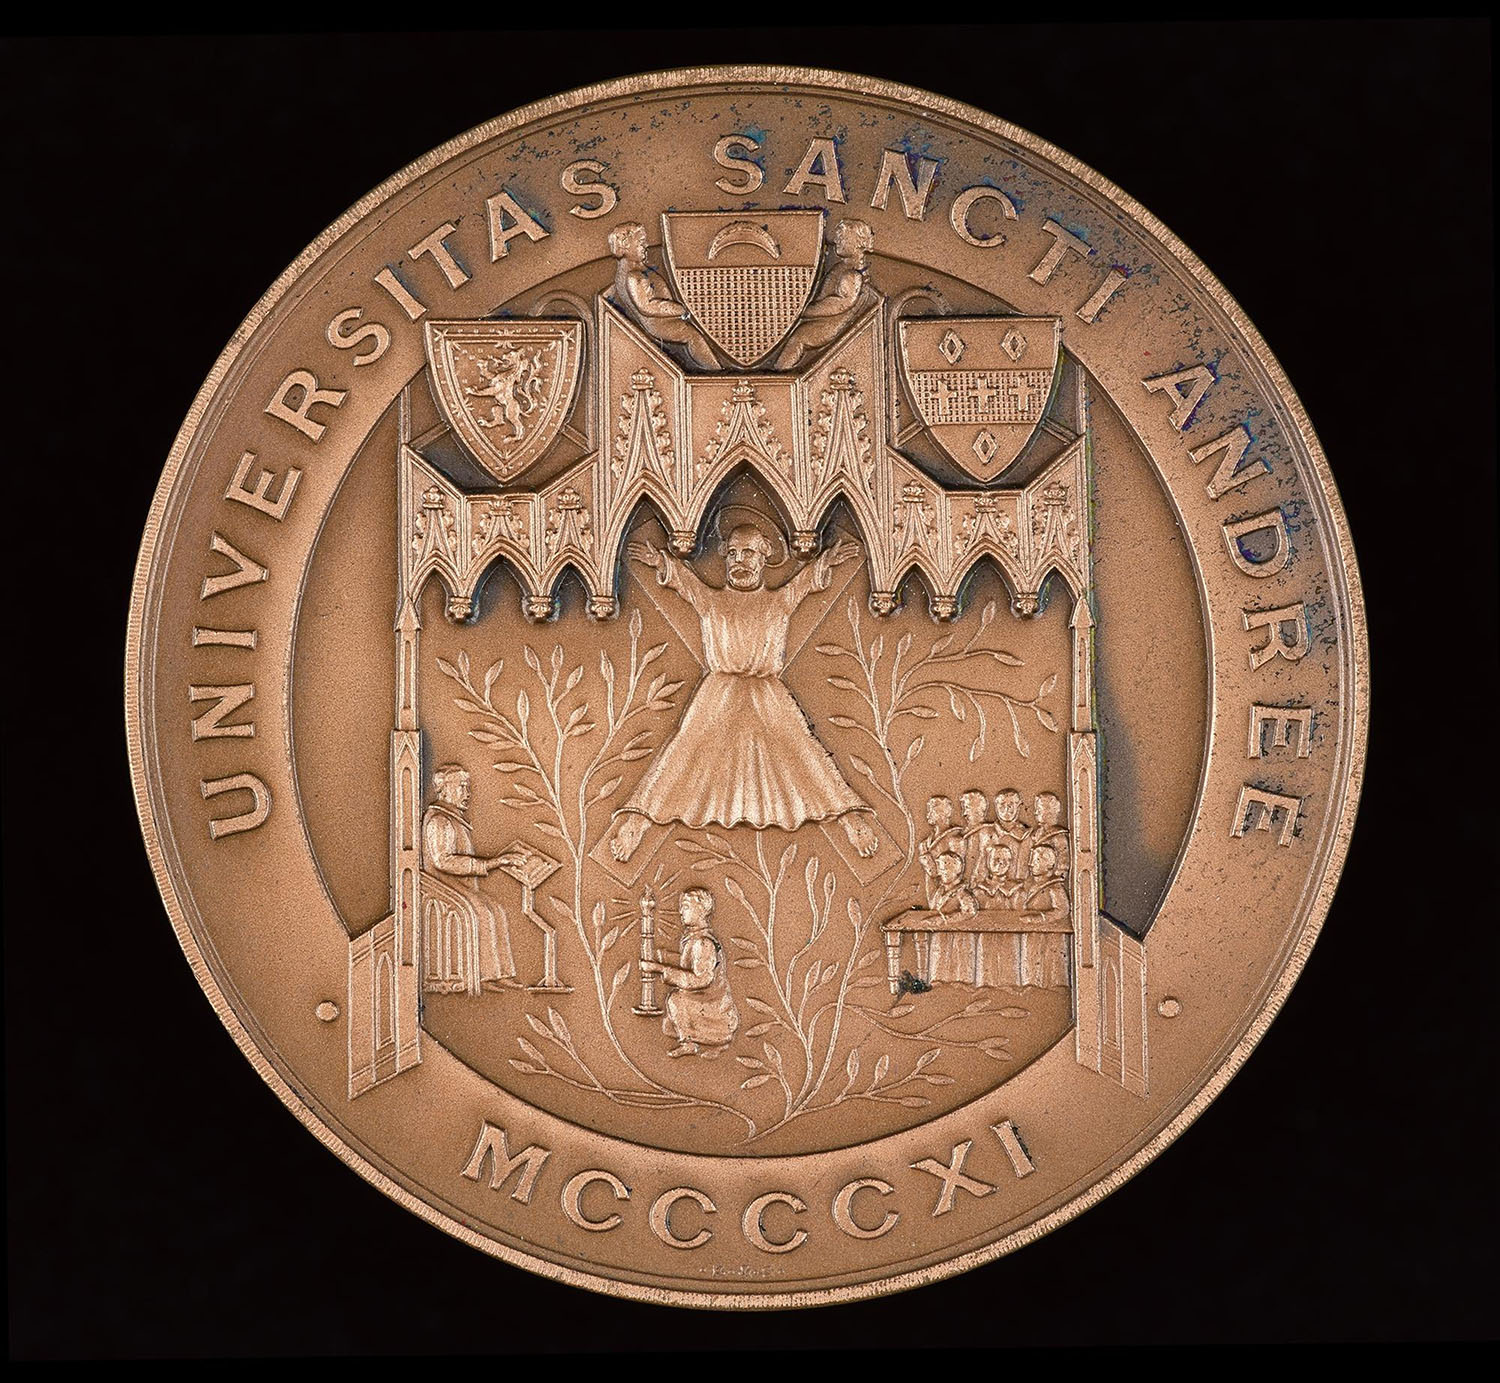 Senior Anatomy Medal, awarded to Sir James Whyte Black (1924 - 2010) by the University of St Andrews, 1943, depicting the saint on his cross.